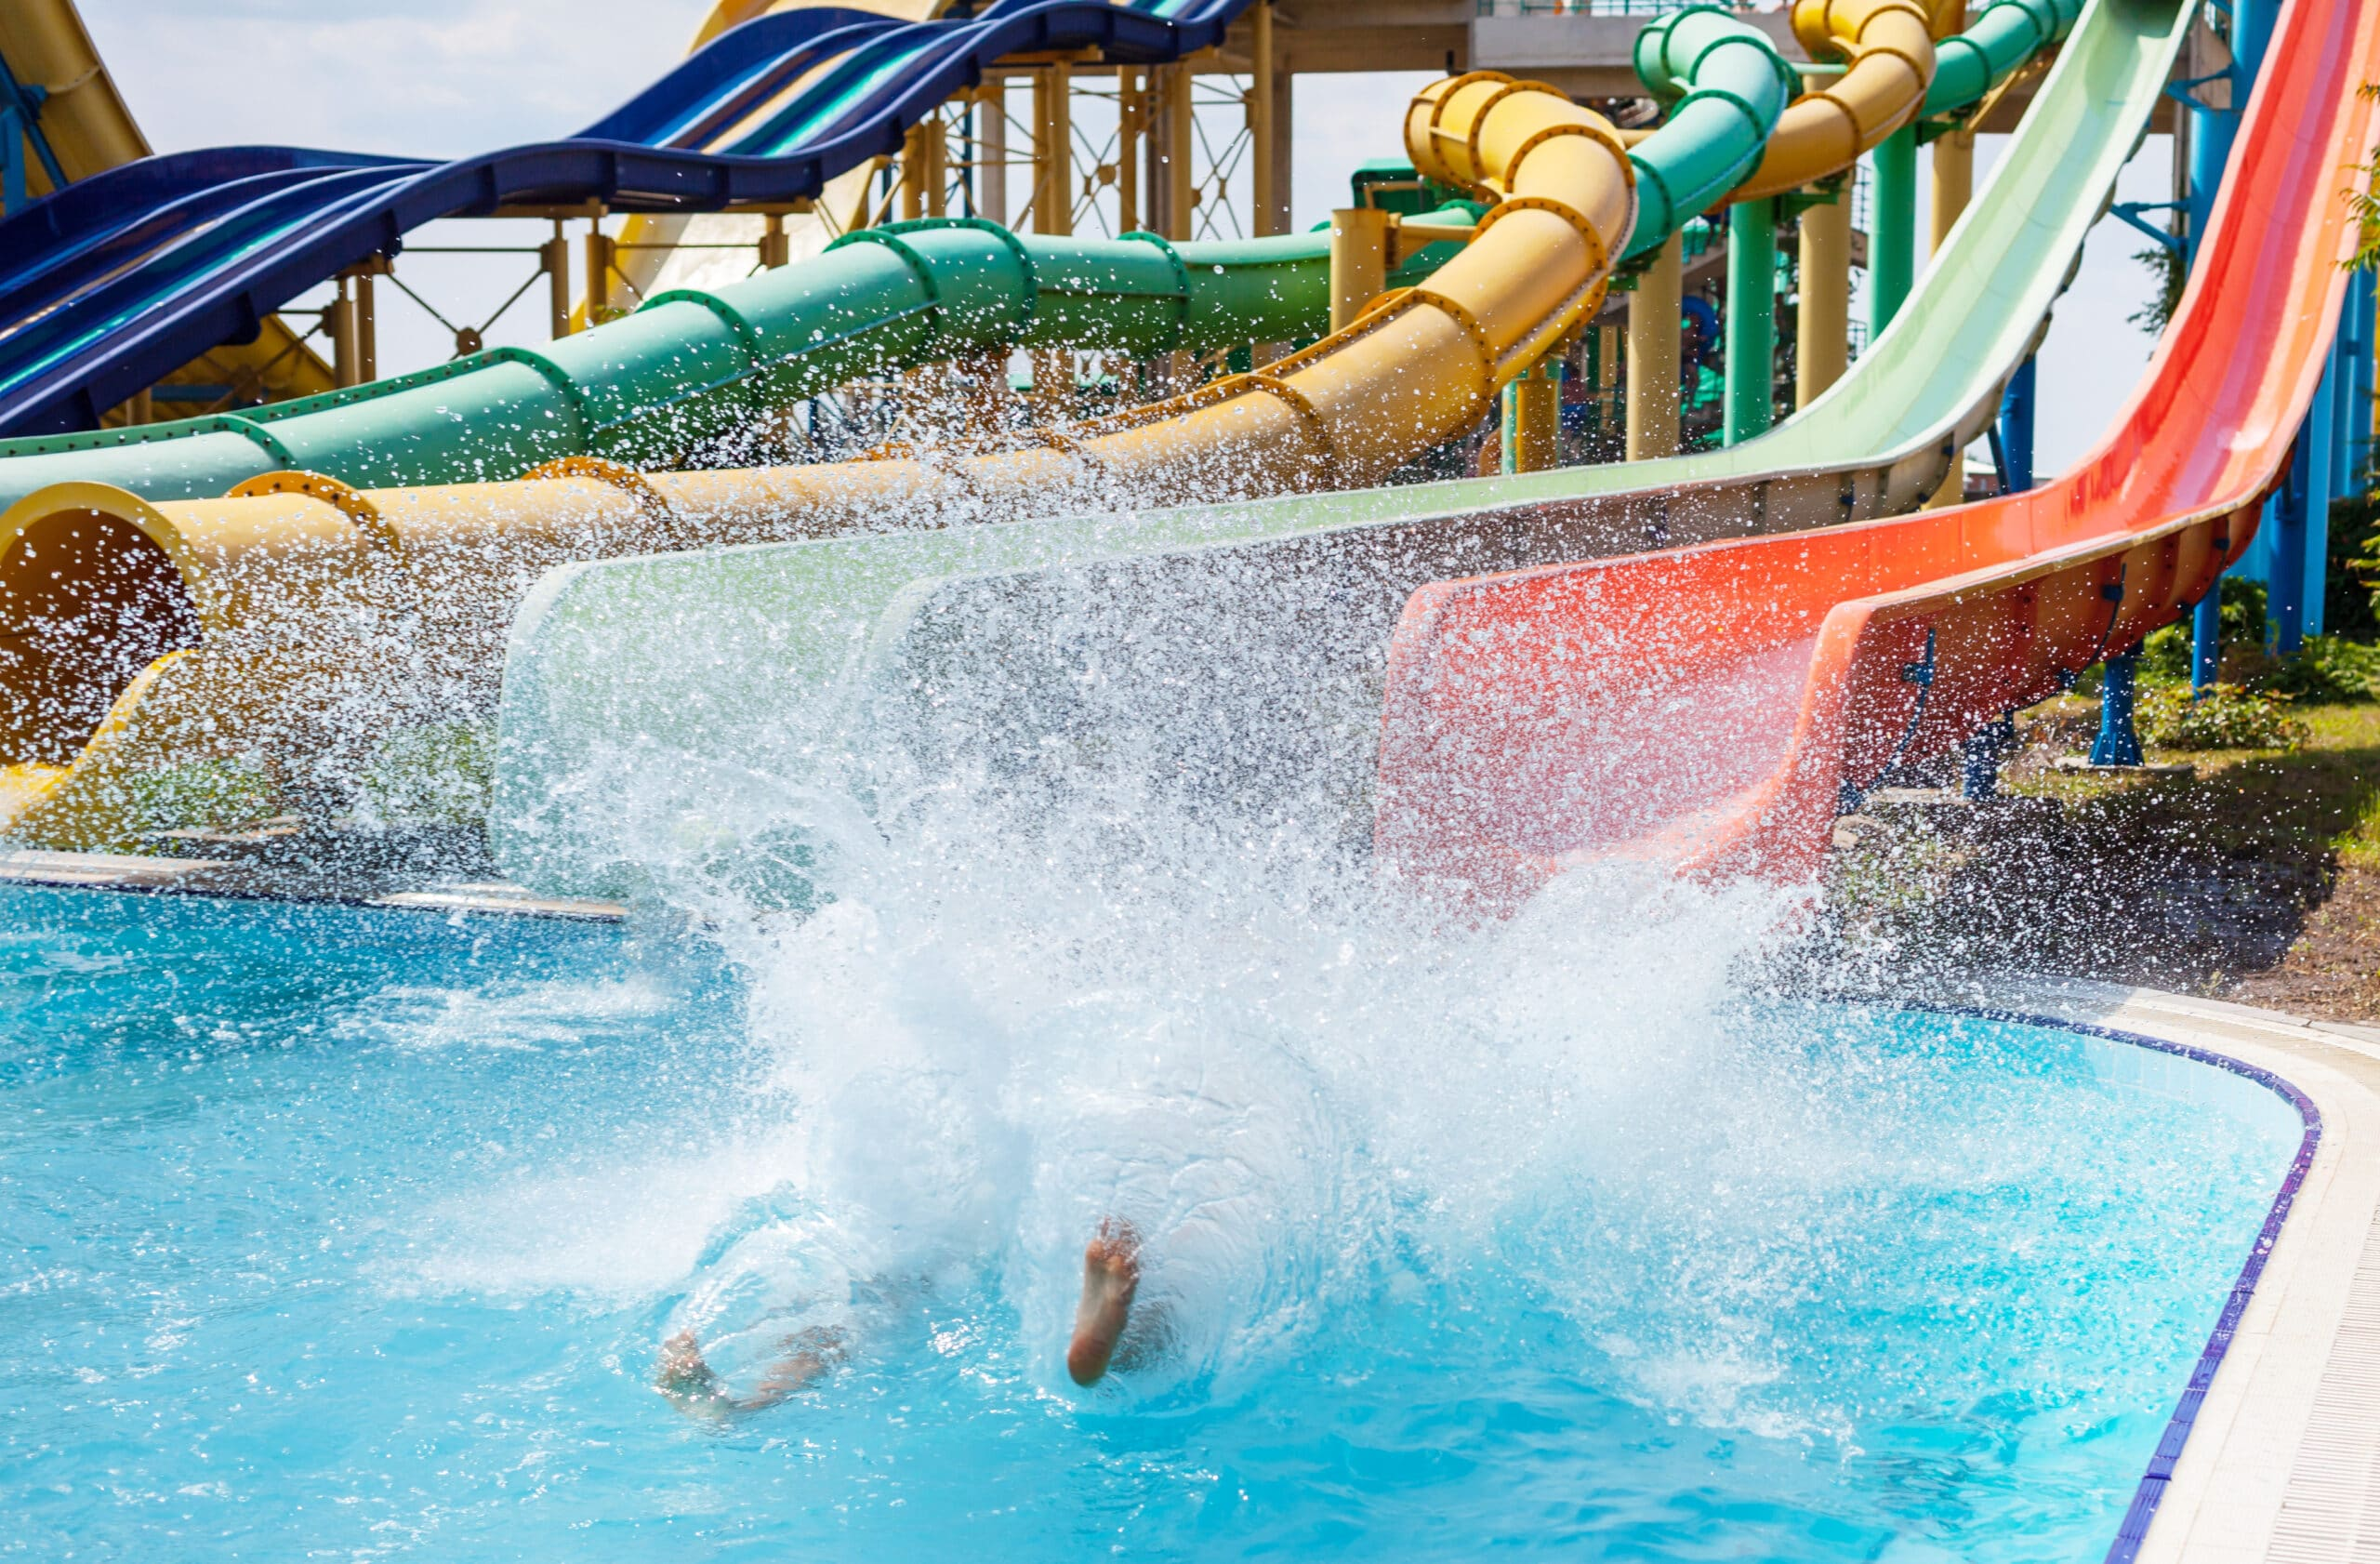 waterpark with waterslides and blue pool